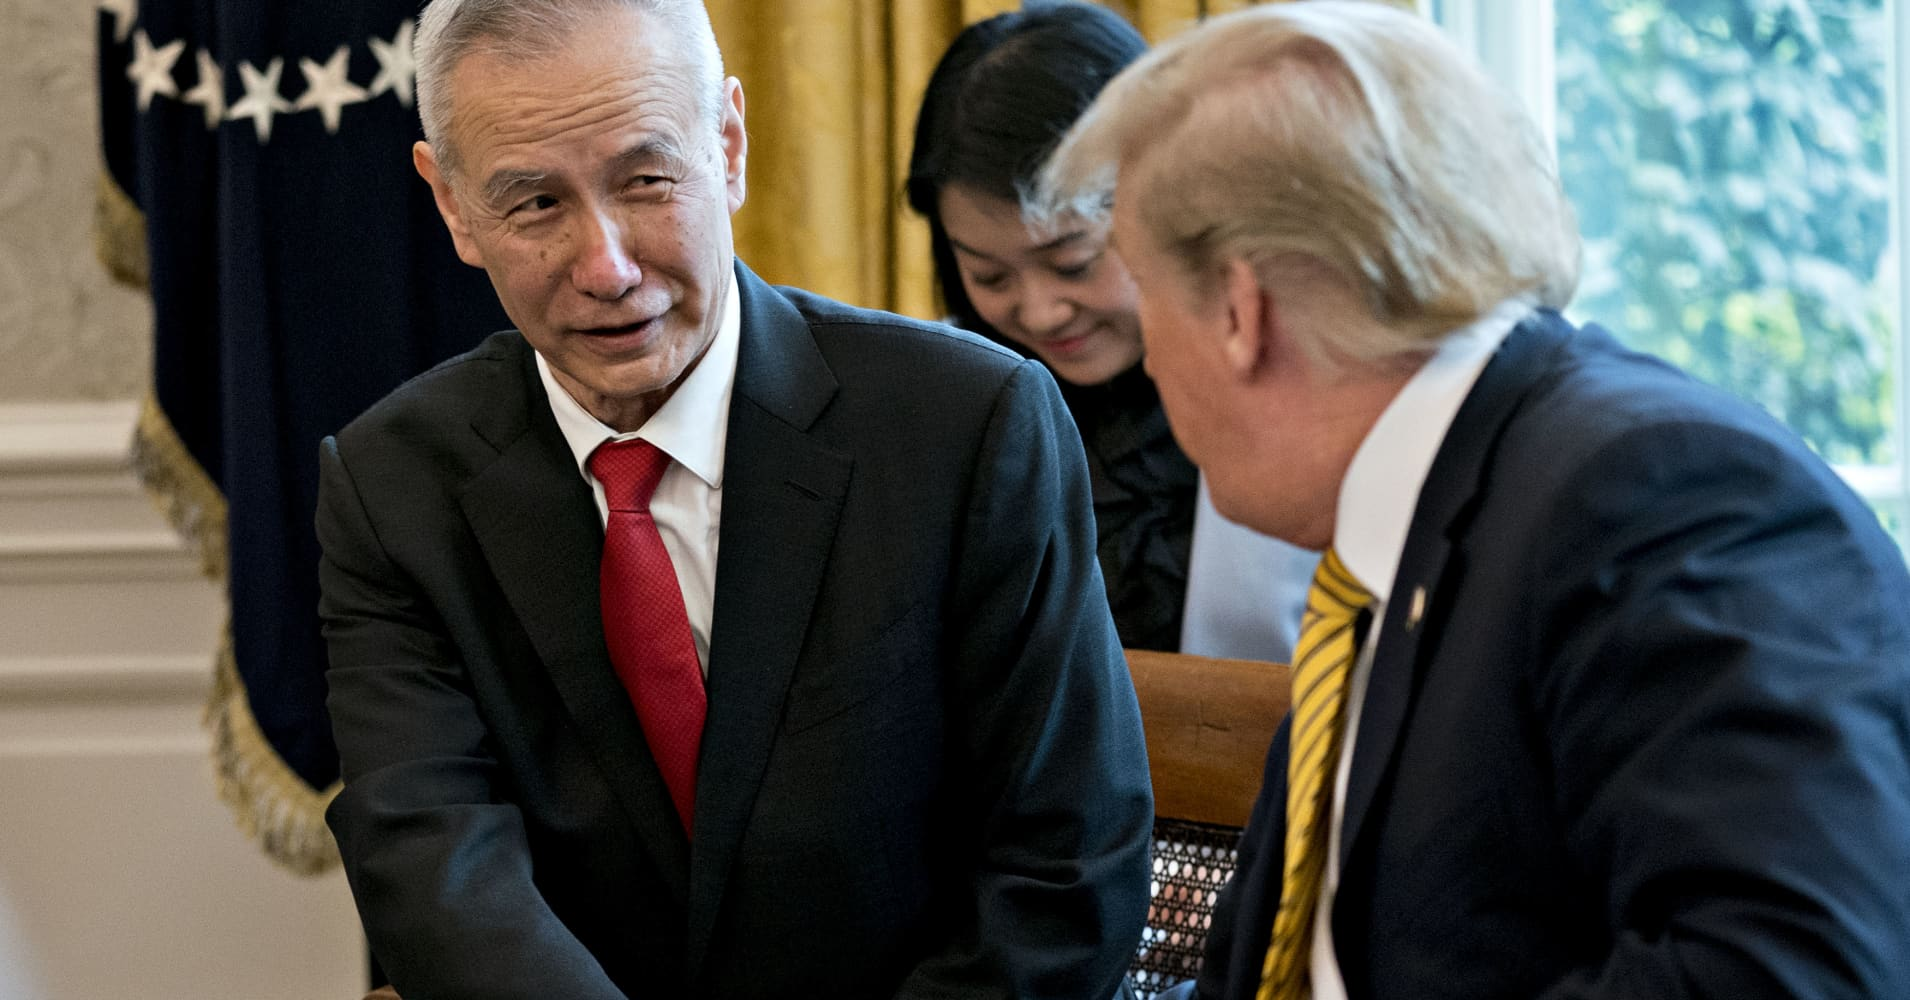 'New consensus' reached on US-China trade, says Chinese Vice Premier Liu He